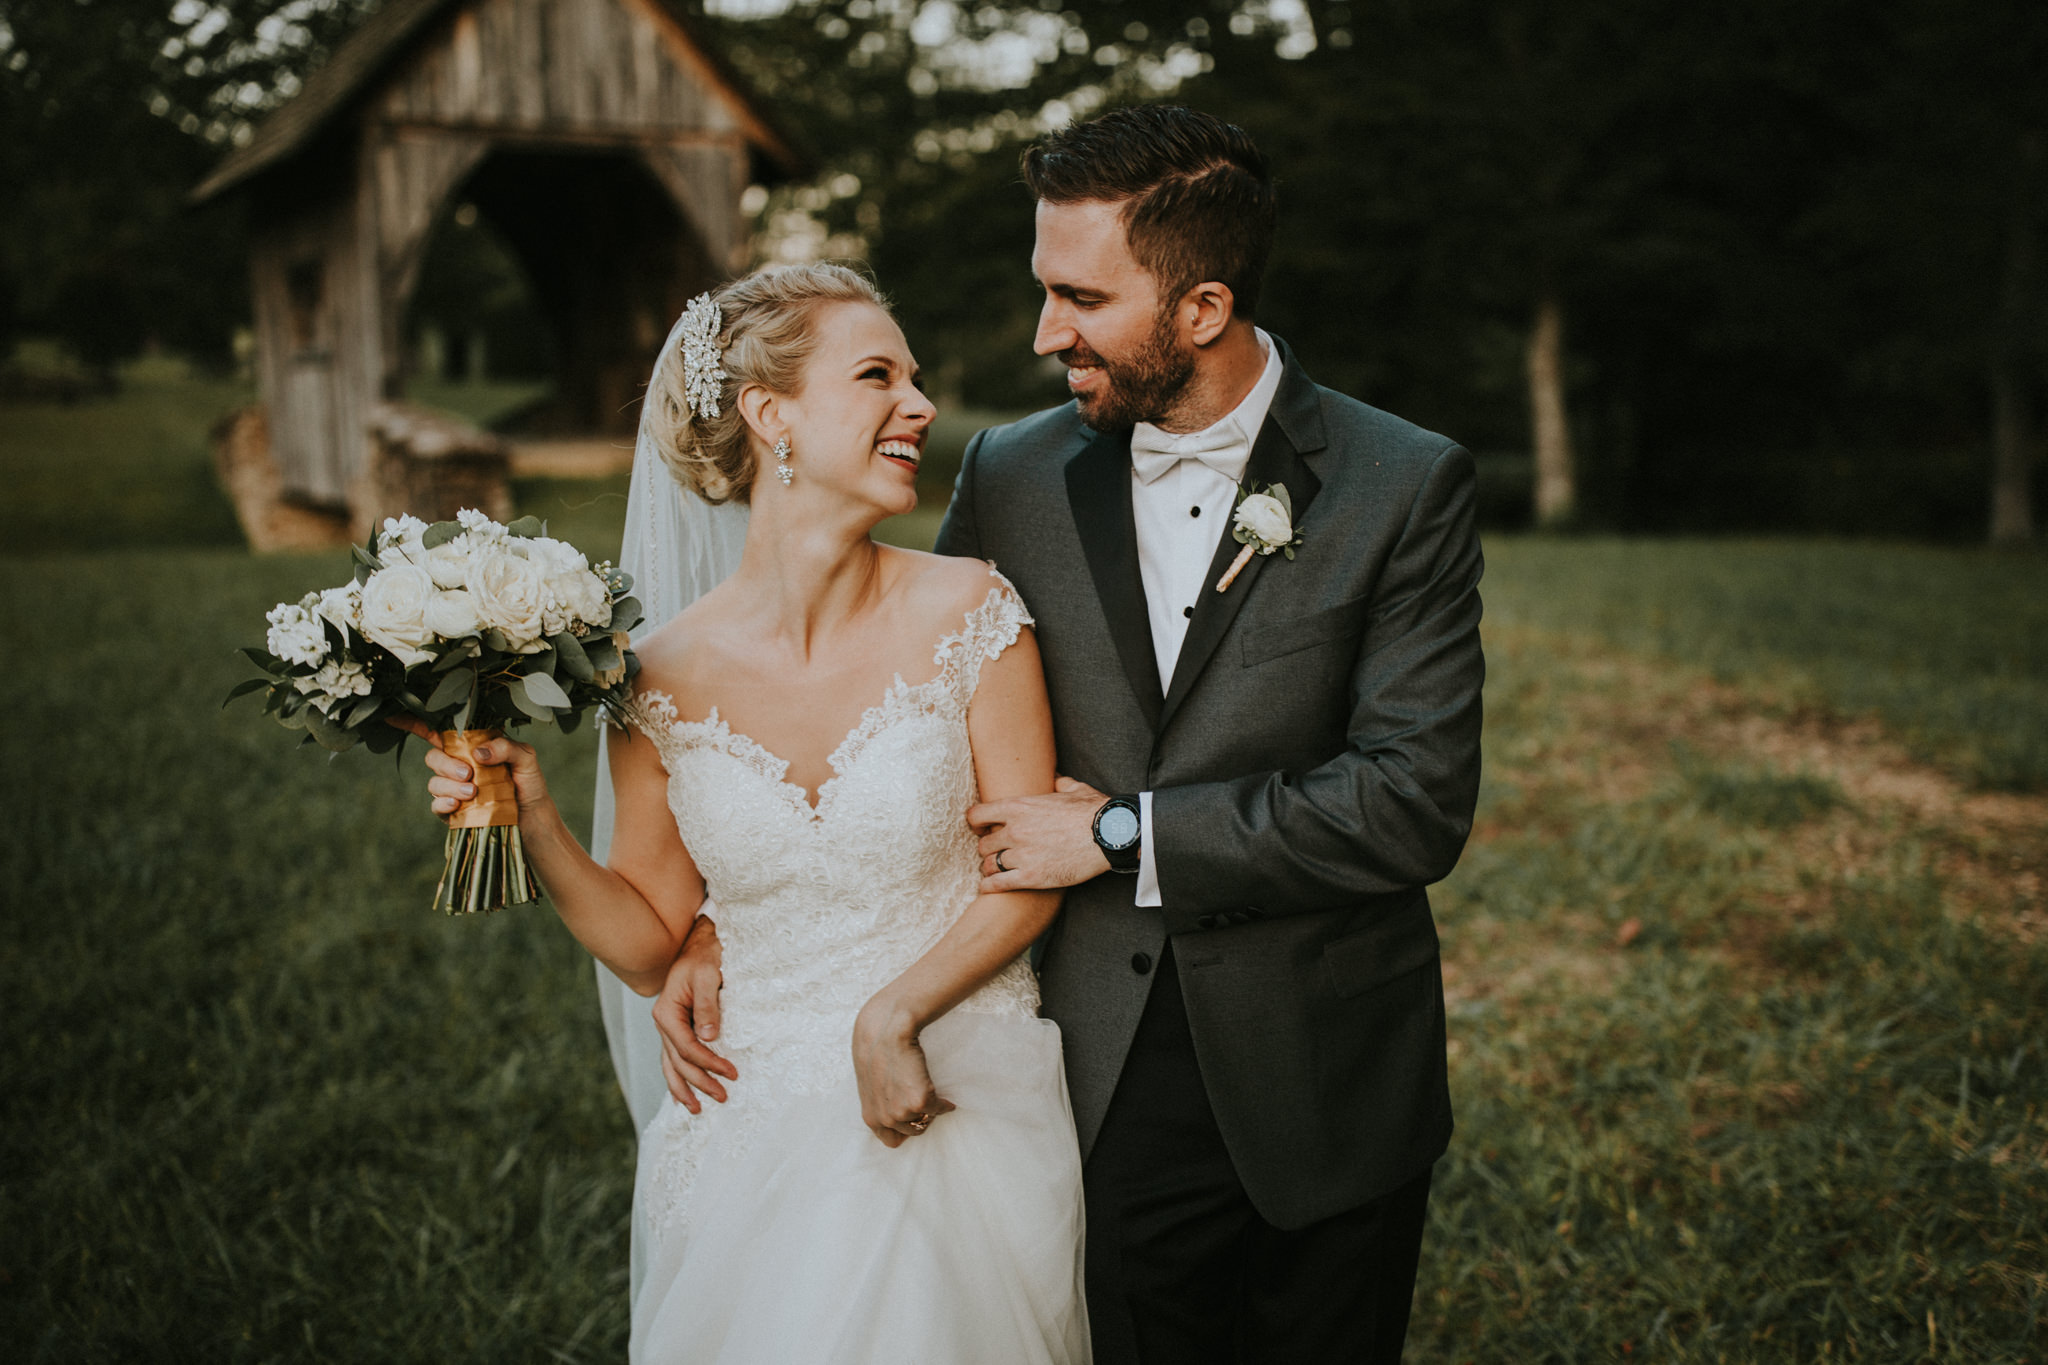 Wedding Photographer Overland Park